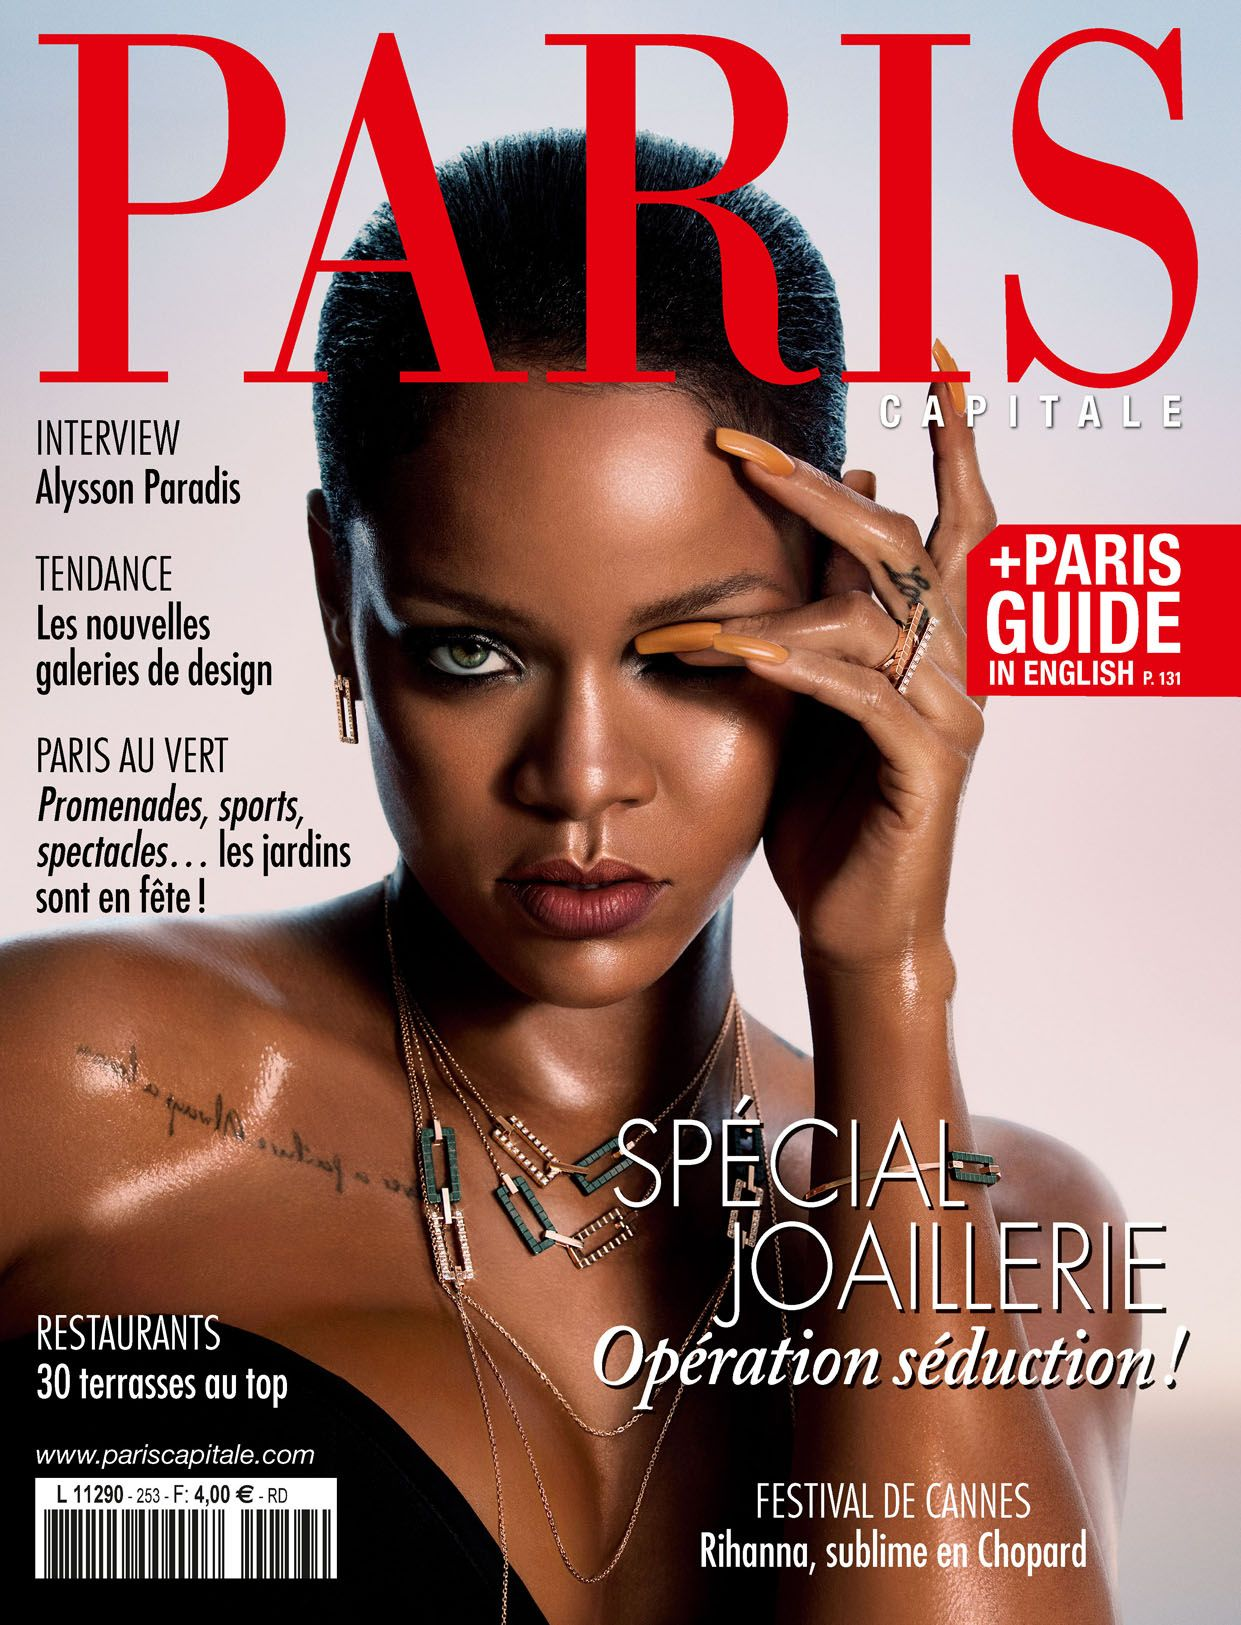 Rihanna Cover Paris Capitale 2017 Rihanna Covers Rihanna